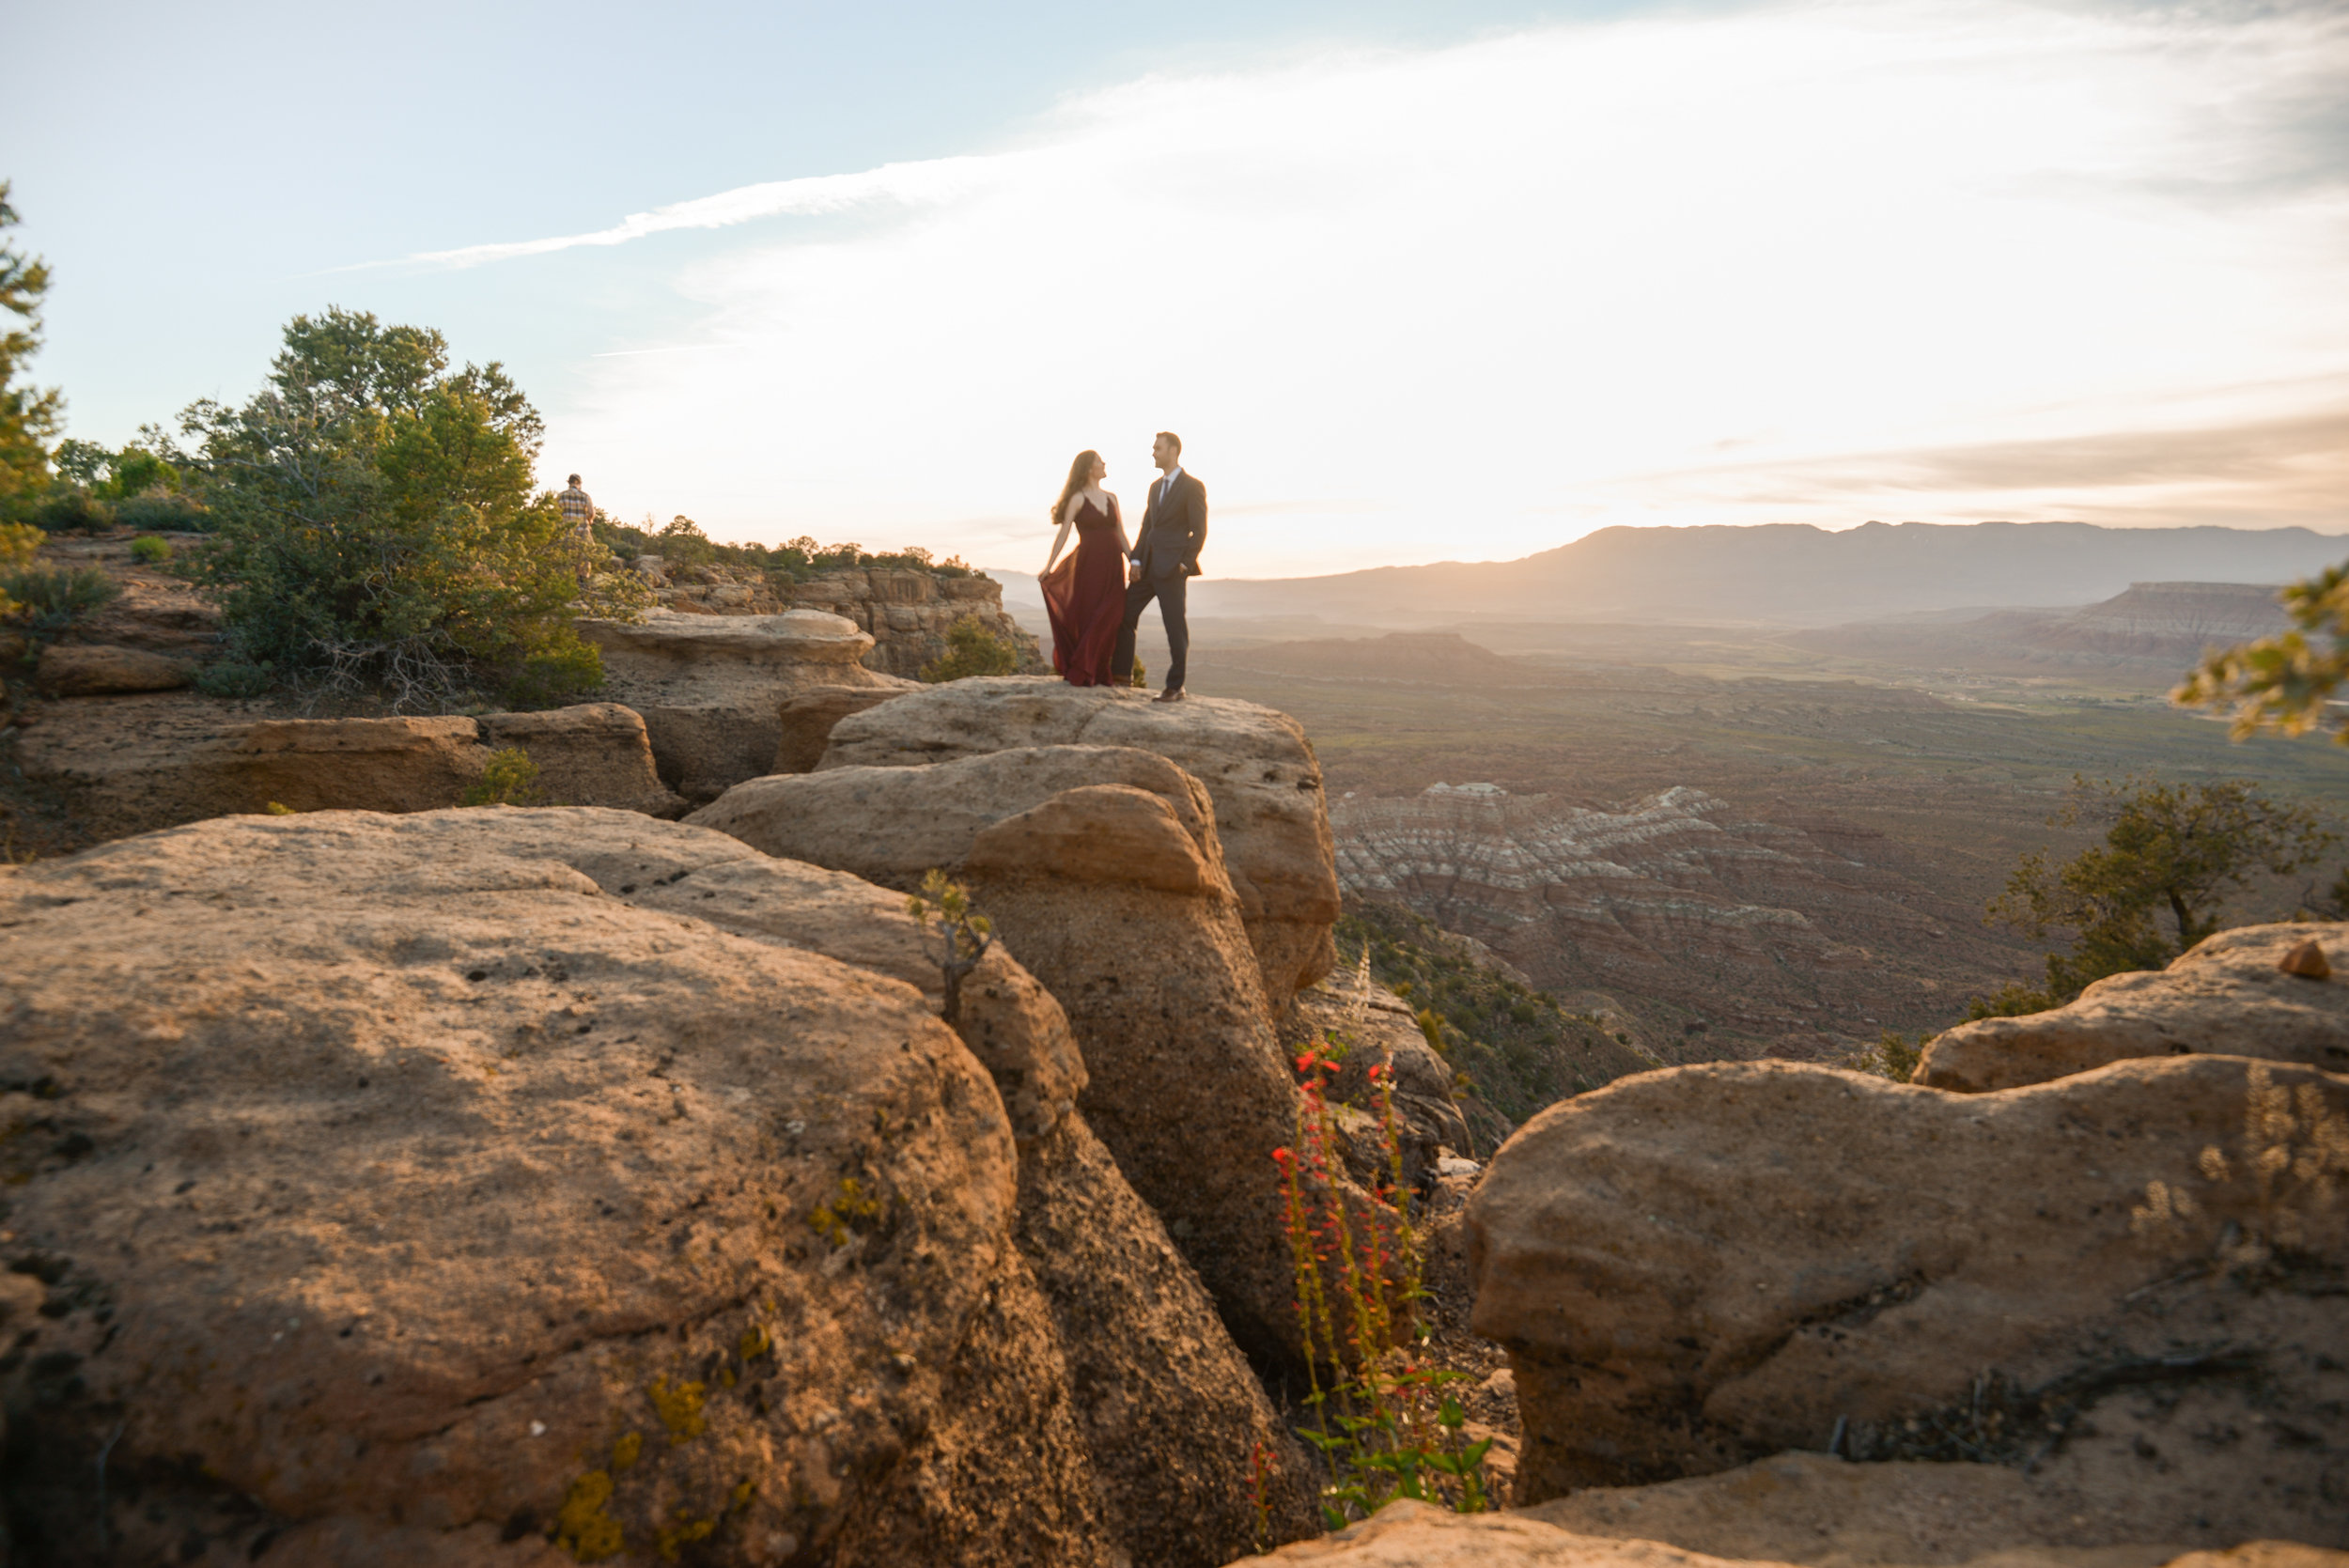 zionnationalparkengagementphotos (53 of 53).jpg